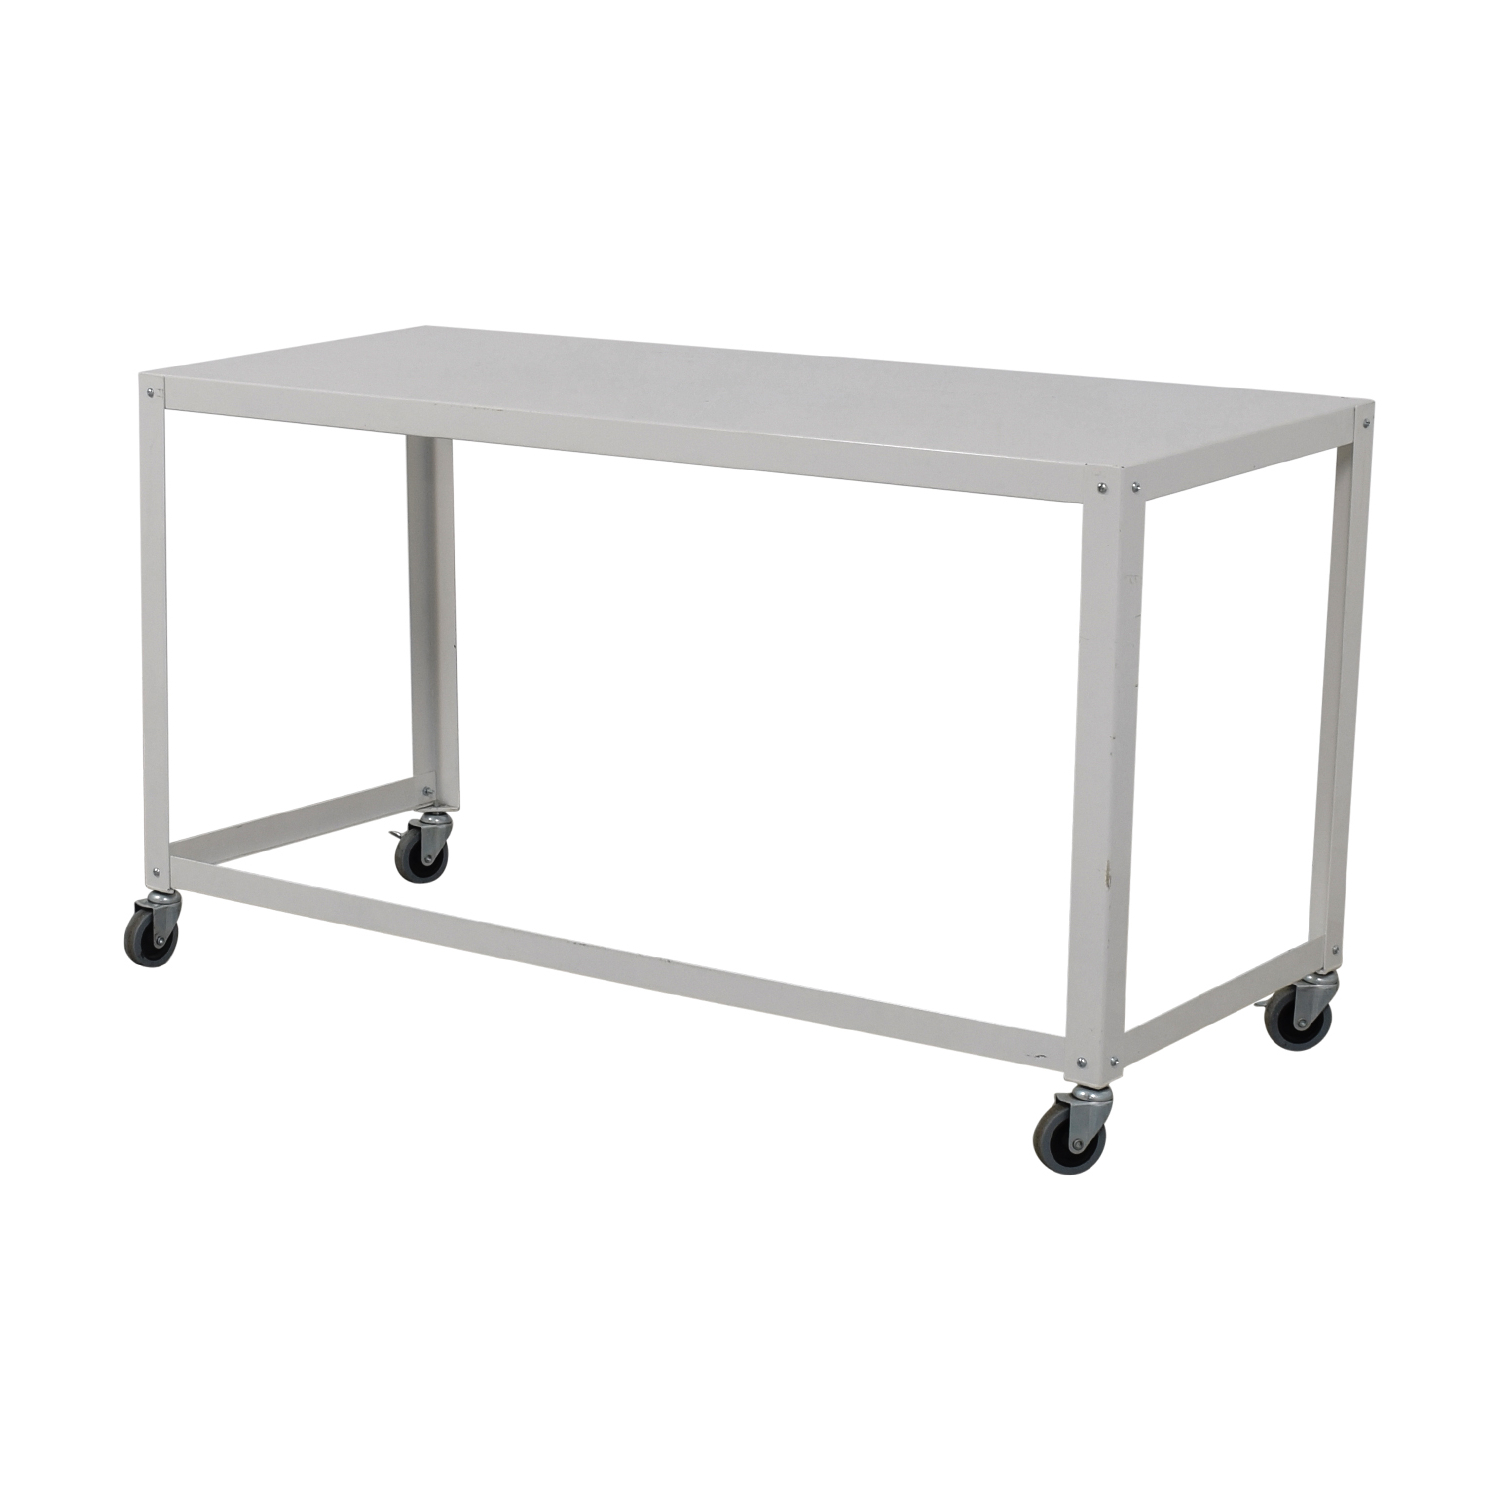 [%81% Off – Cb2 Cb2 Go Cart White Rolling Desk / Tables Intended For Well Known Go Cart White Rolling Coffee Tables|Go Cart White Rolling Coffee Tables Intended For Latest 81% Off – Cb2 Cb2 Go Cart White Rolling Desk / Tables|Well Known Go Cart White Rolling Coffee Tables Regarding 81% Off – Cb2 Cb2 Go Cart White Rolling Desk / Tables|Current 81% Off – Cb2 Cb2 Go Cart White Rolling Desk / Tables In Go Cart White Rolling Coffee Tables%] (View 4 of 20)